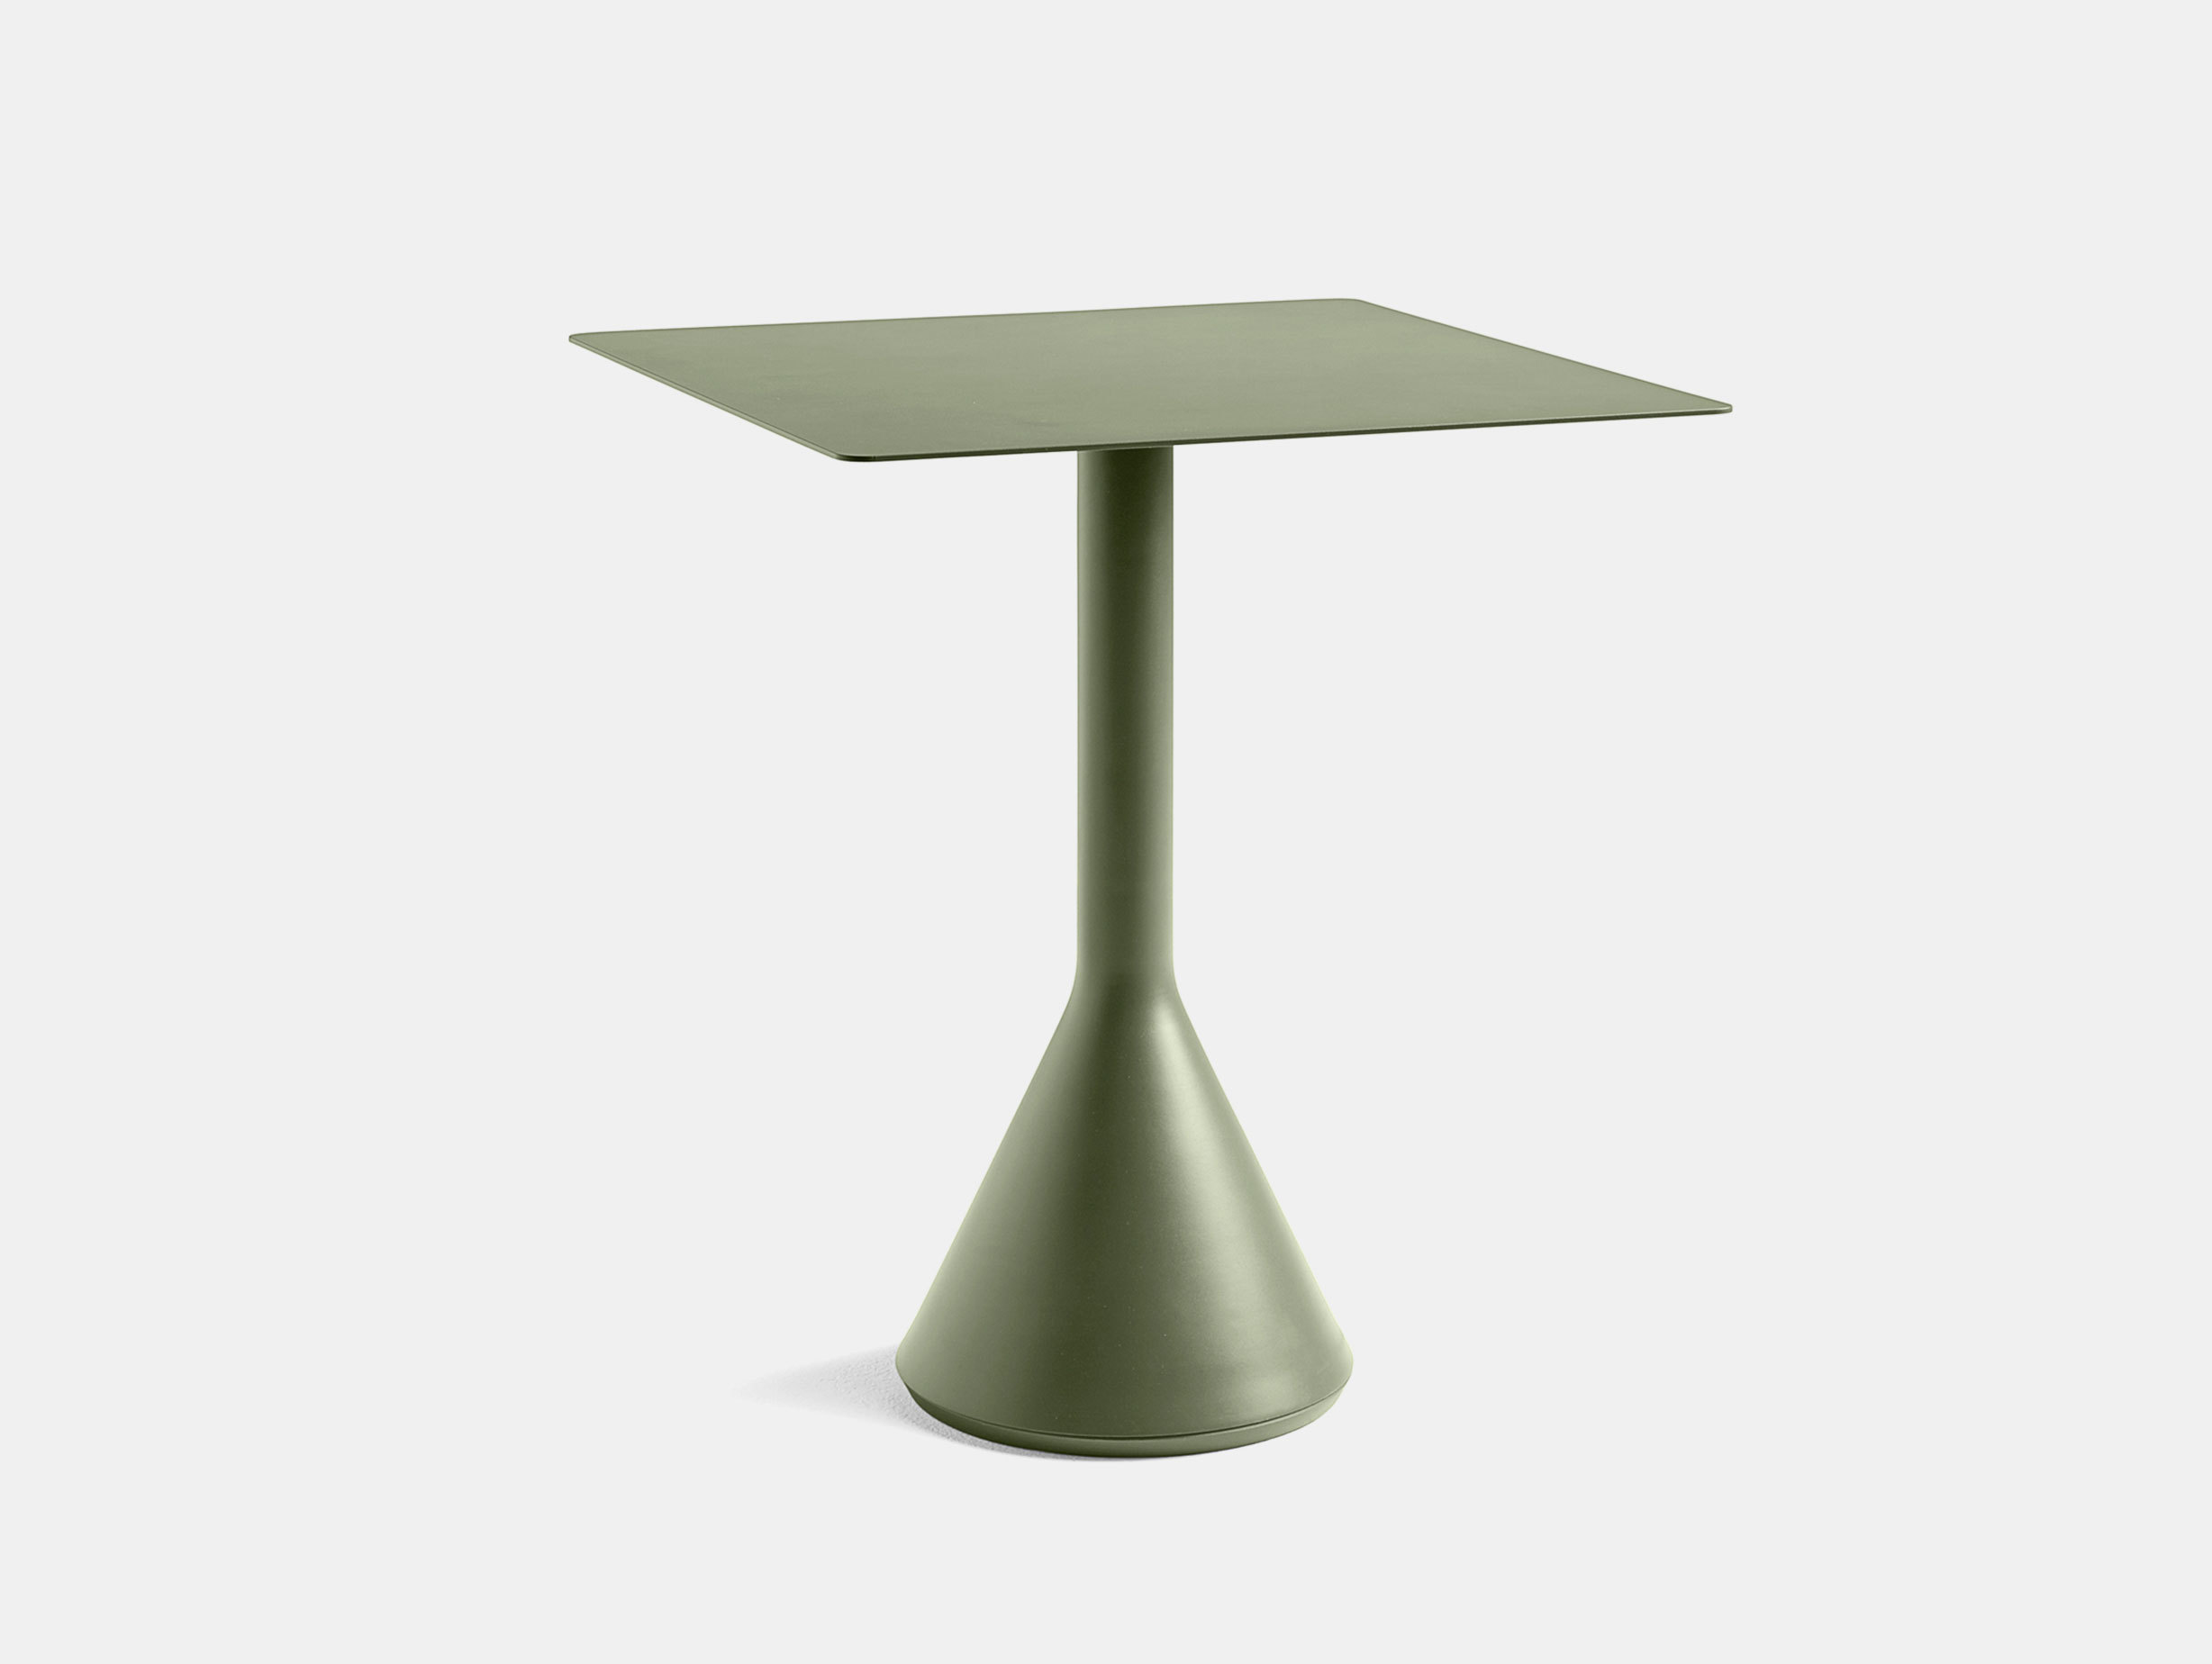 Palissade Cone Table image 1